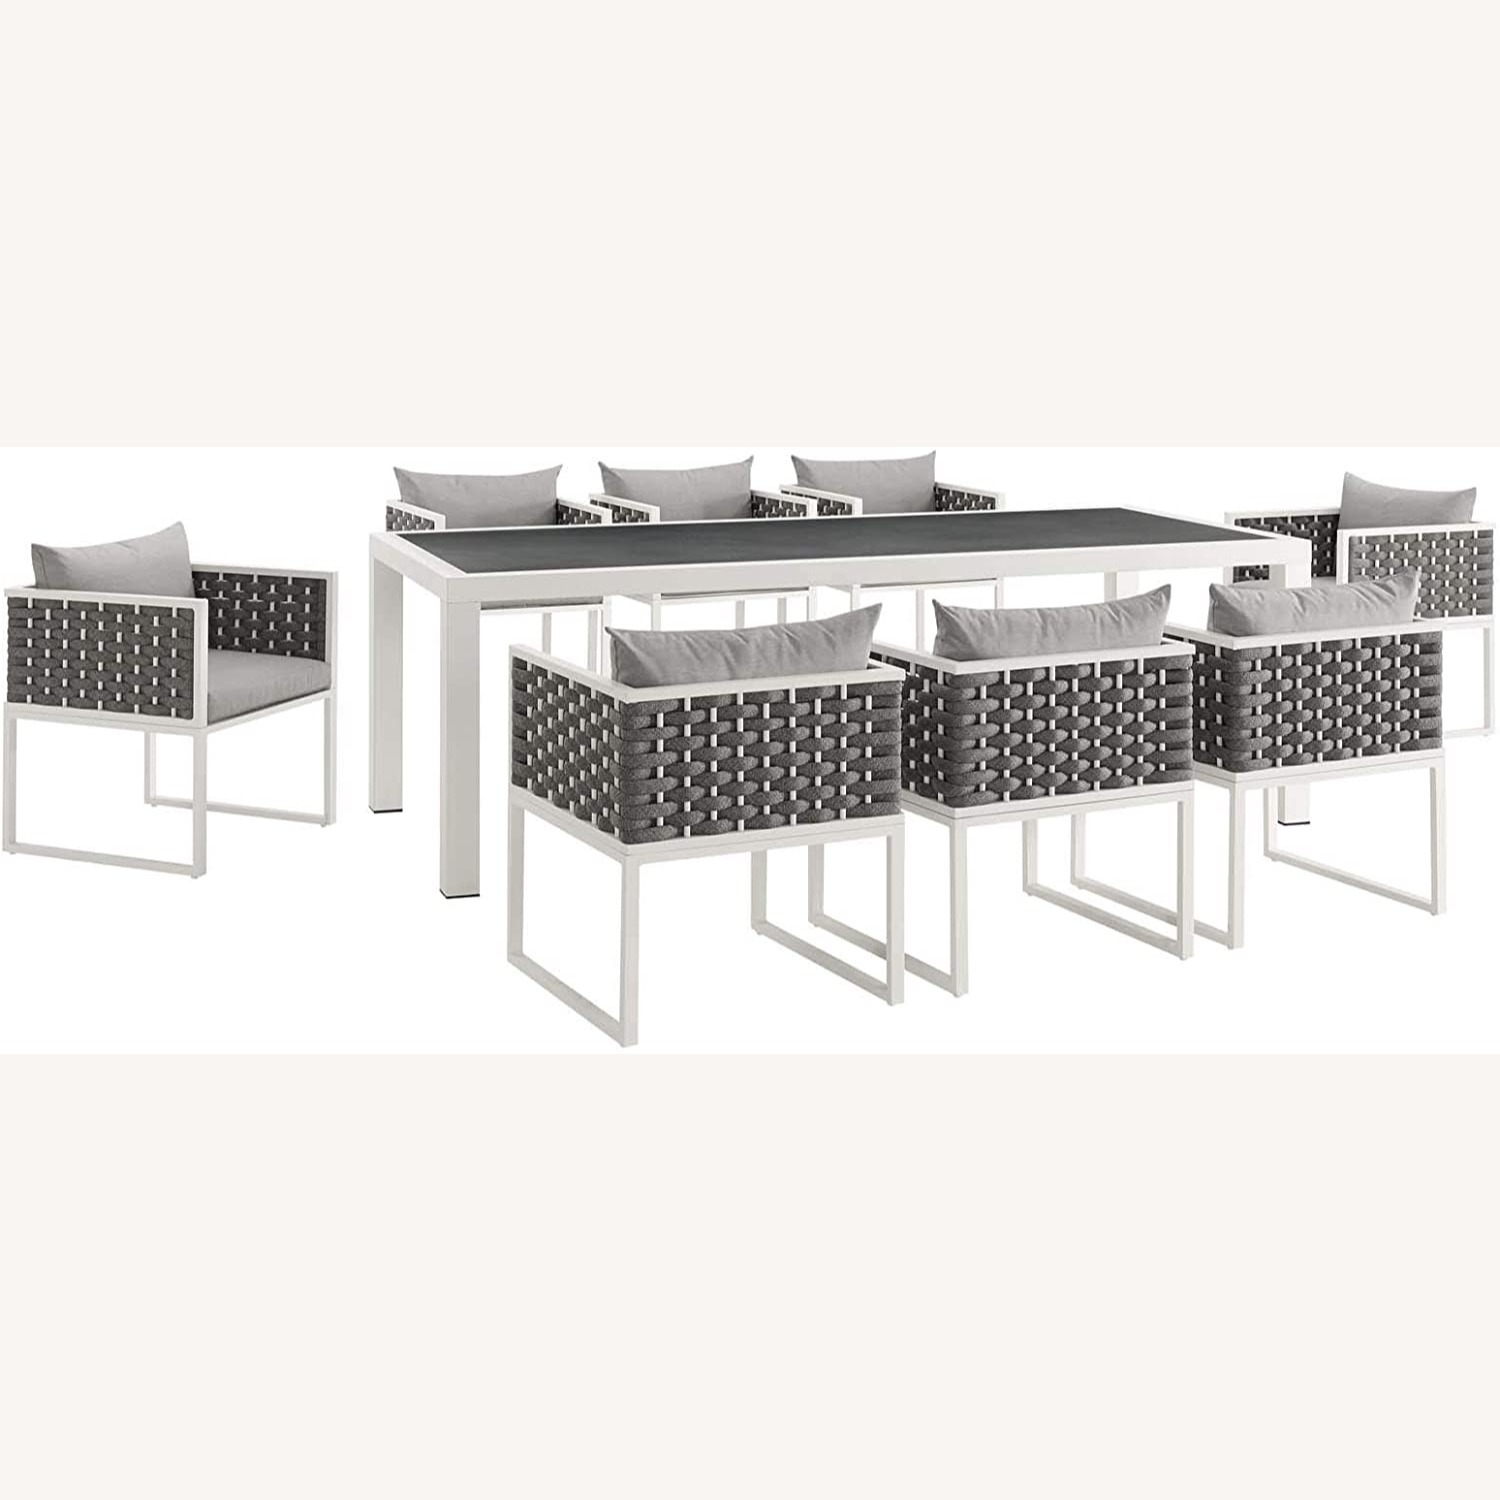 Modern 9-Piece Patio Dining Set In White & Gray - image-0